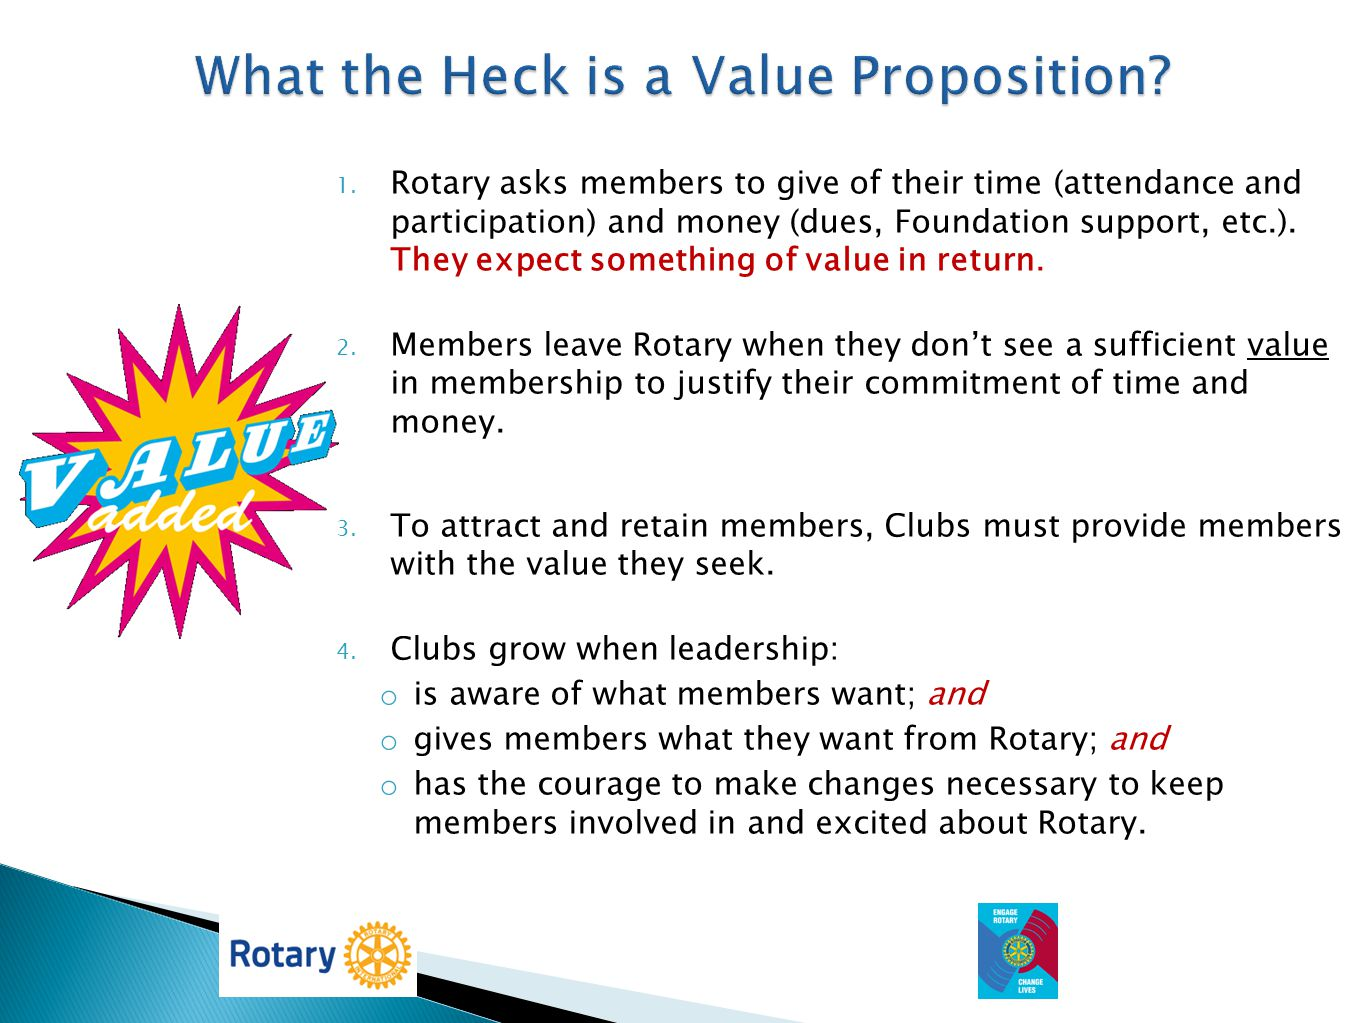 What the Heck is a Value Proposition